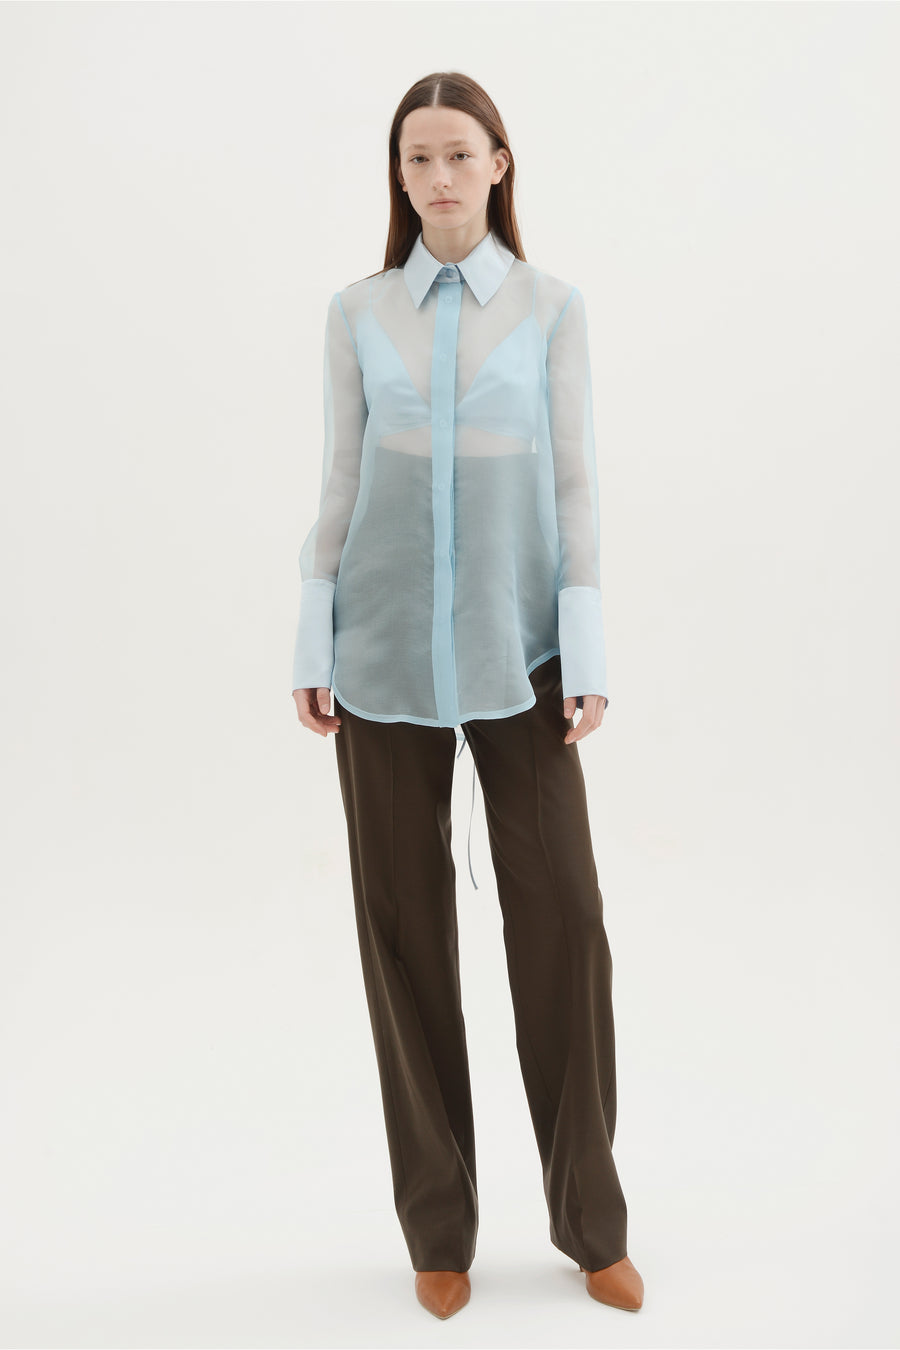 Silk Organza Sheer Shirt W/ Bra - Light Blue